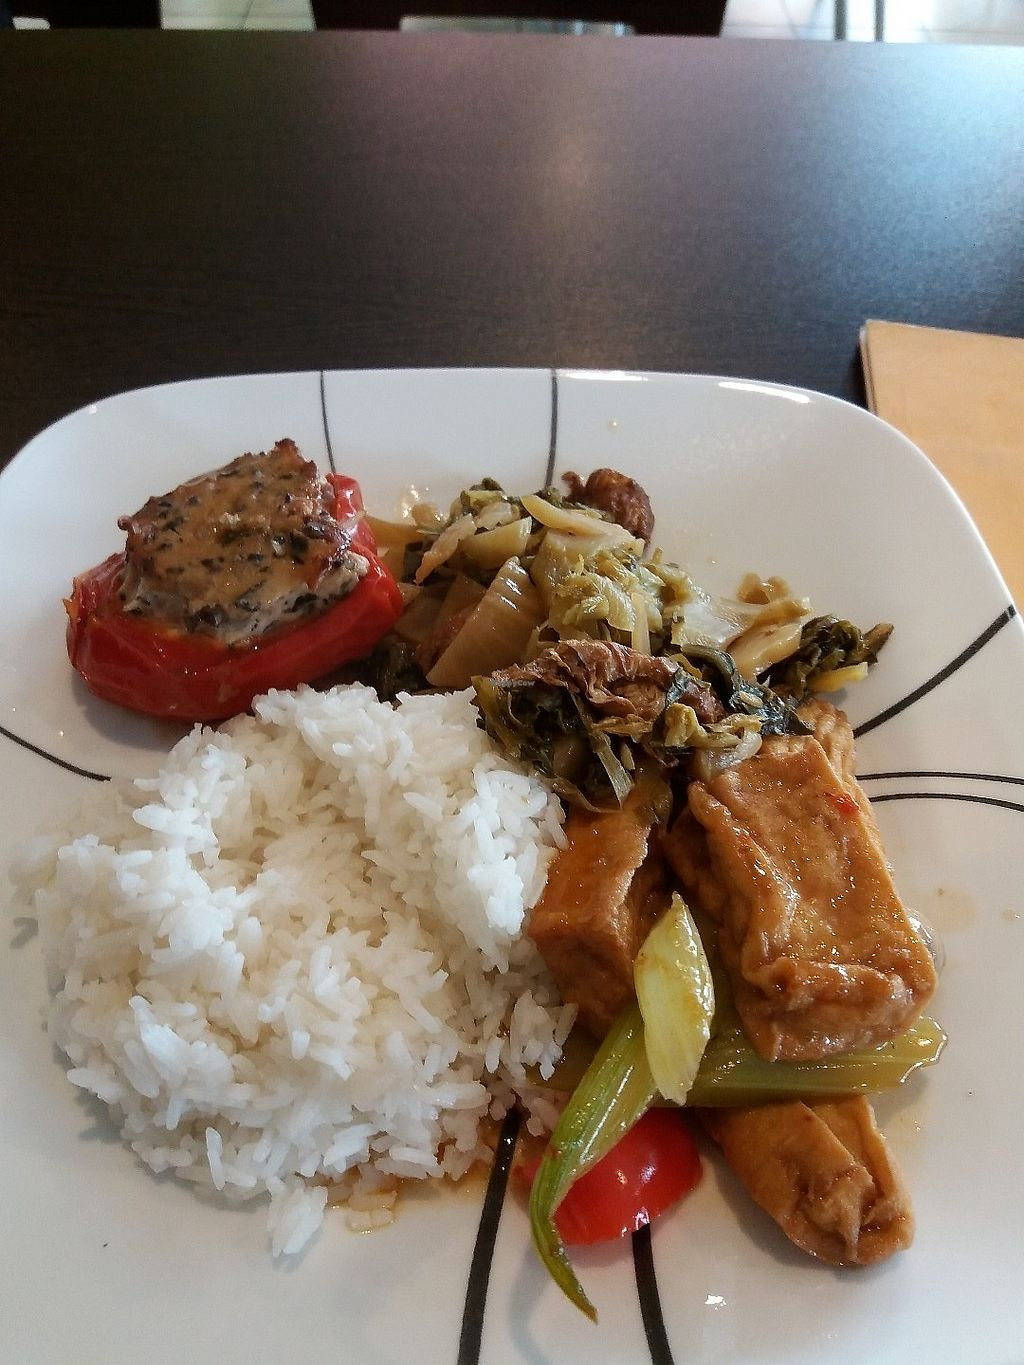 """Photo of Bo De Tam Nha Hang Chay  by <a href=""""/members/profile/veganvirtues"""">veganvirtues</a> <br/>My rice and 3 veggies <br/> June 15, 2017  - <a href='/contact/abuse/image/88688/269276'>Report</a>"""